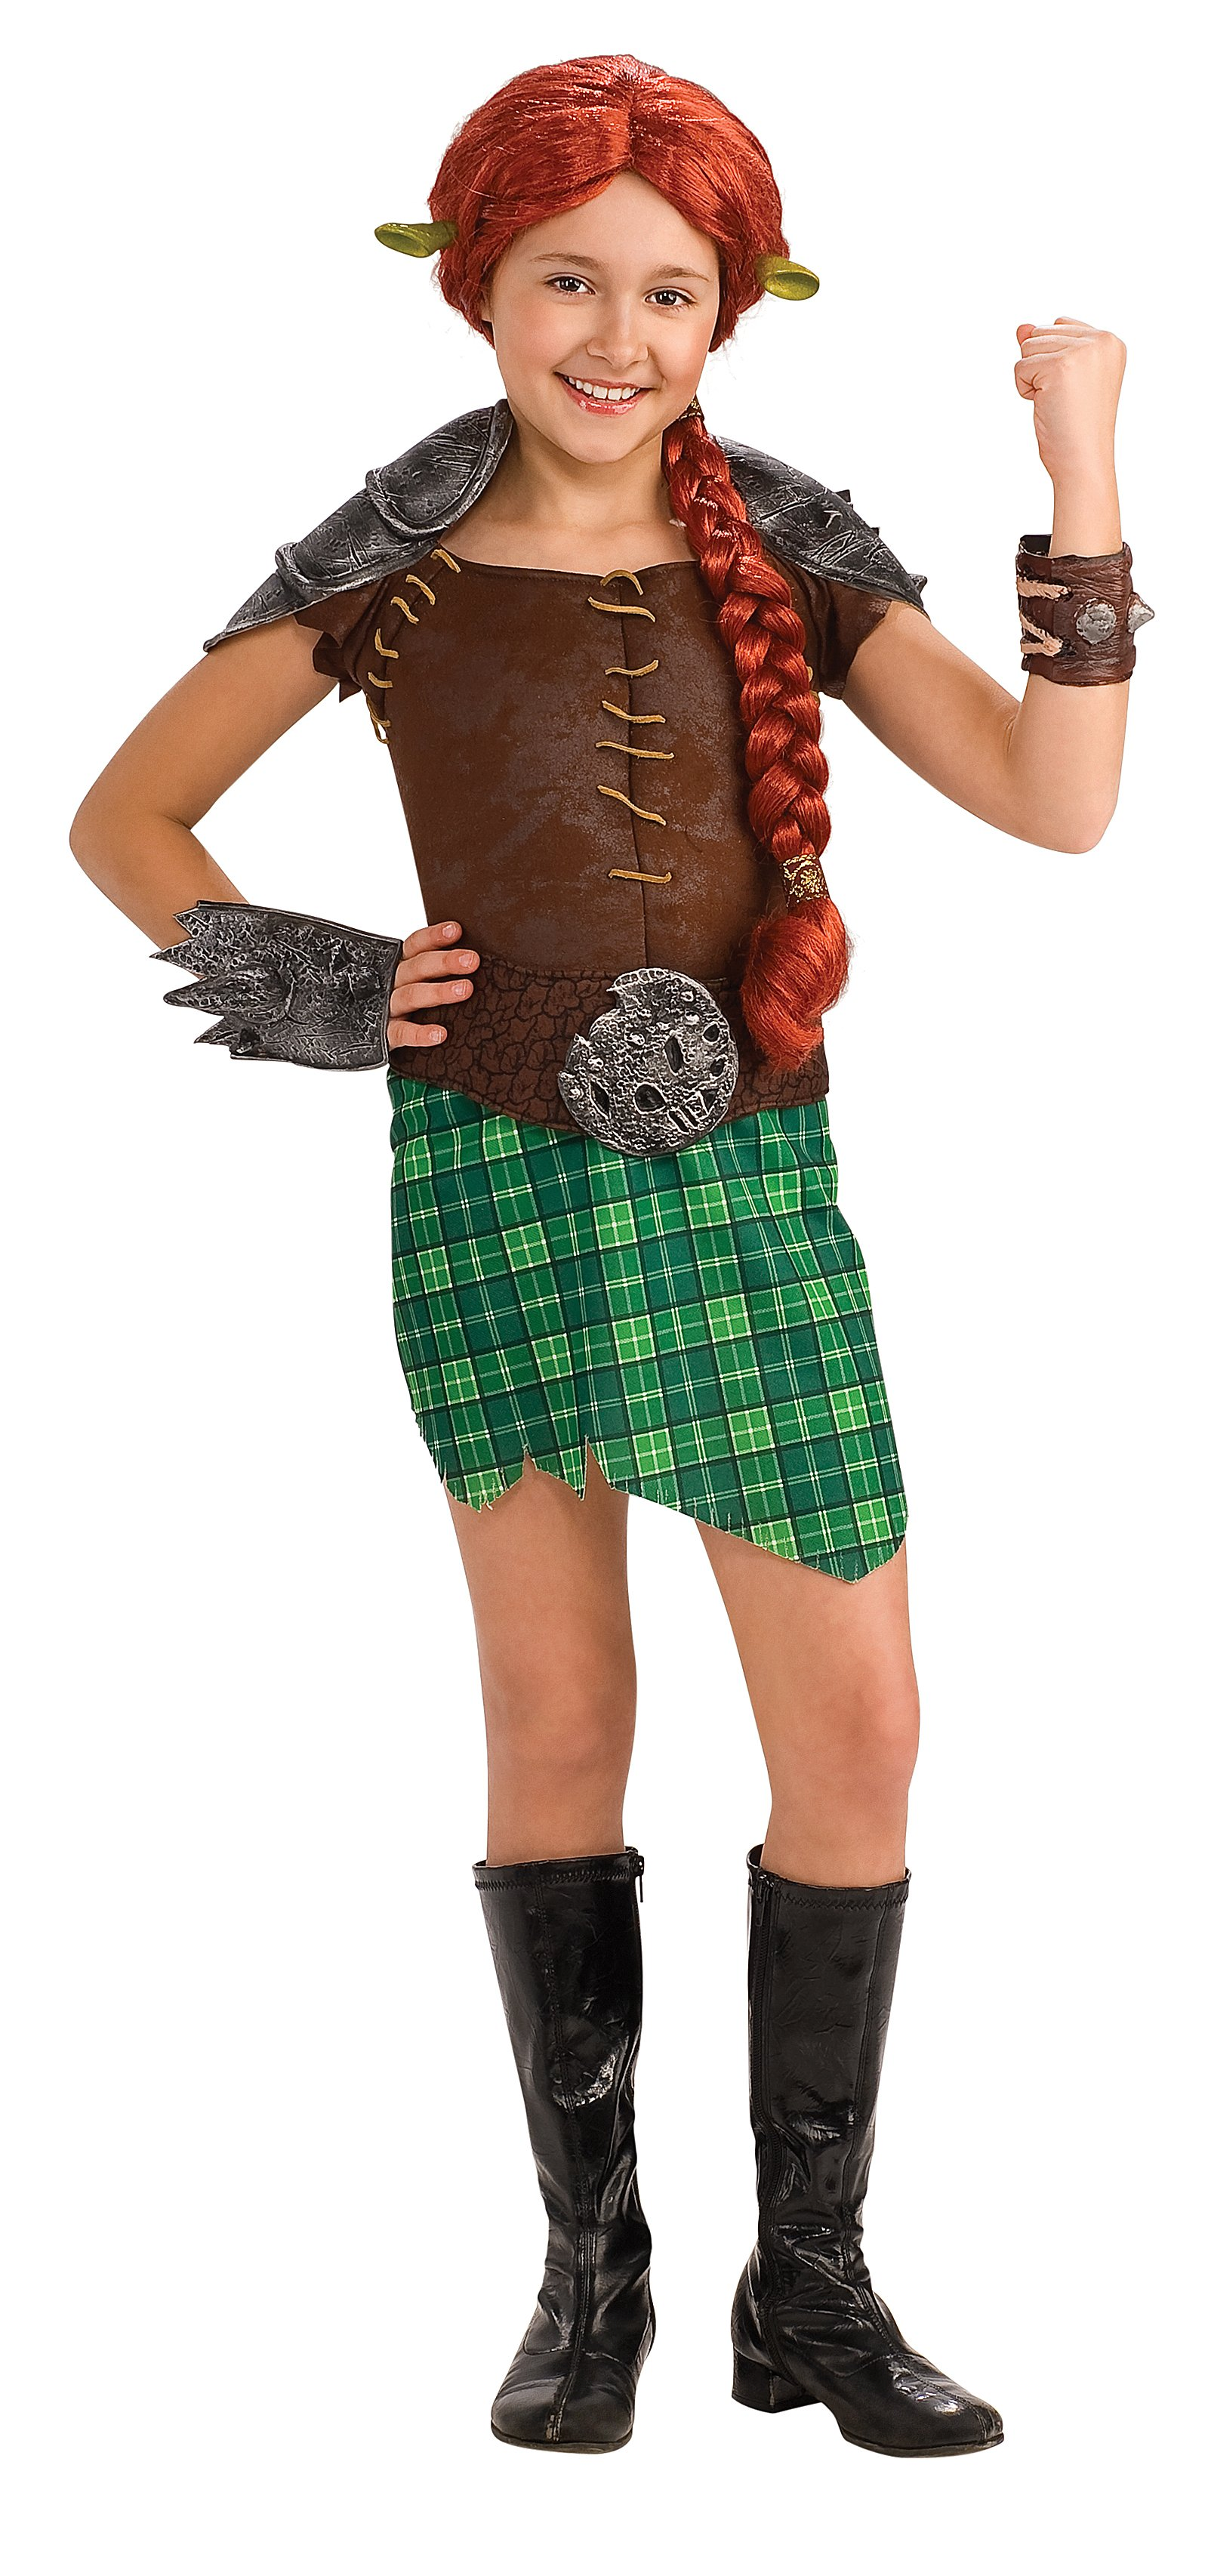 Shrek Forever After - Deluxe Fiona Warrior Toddler/Child Costume